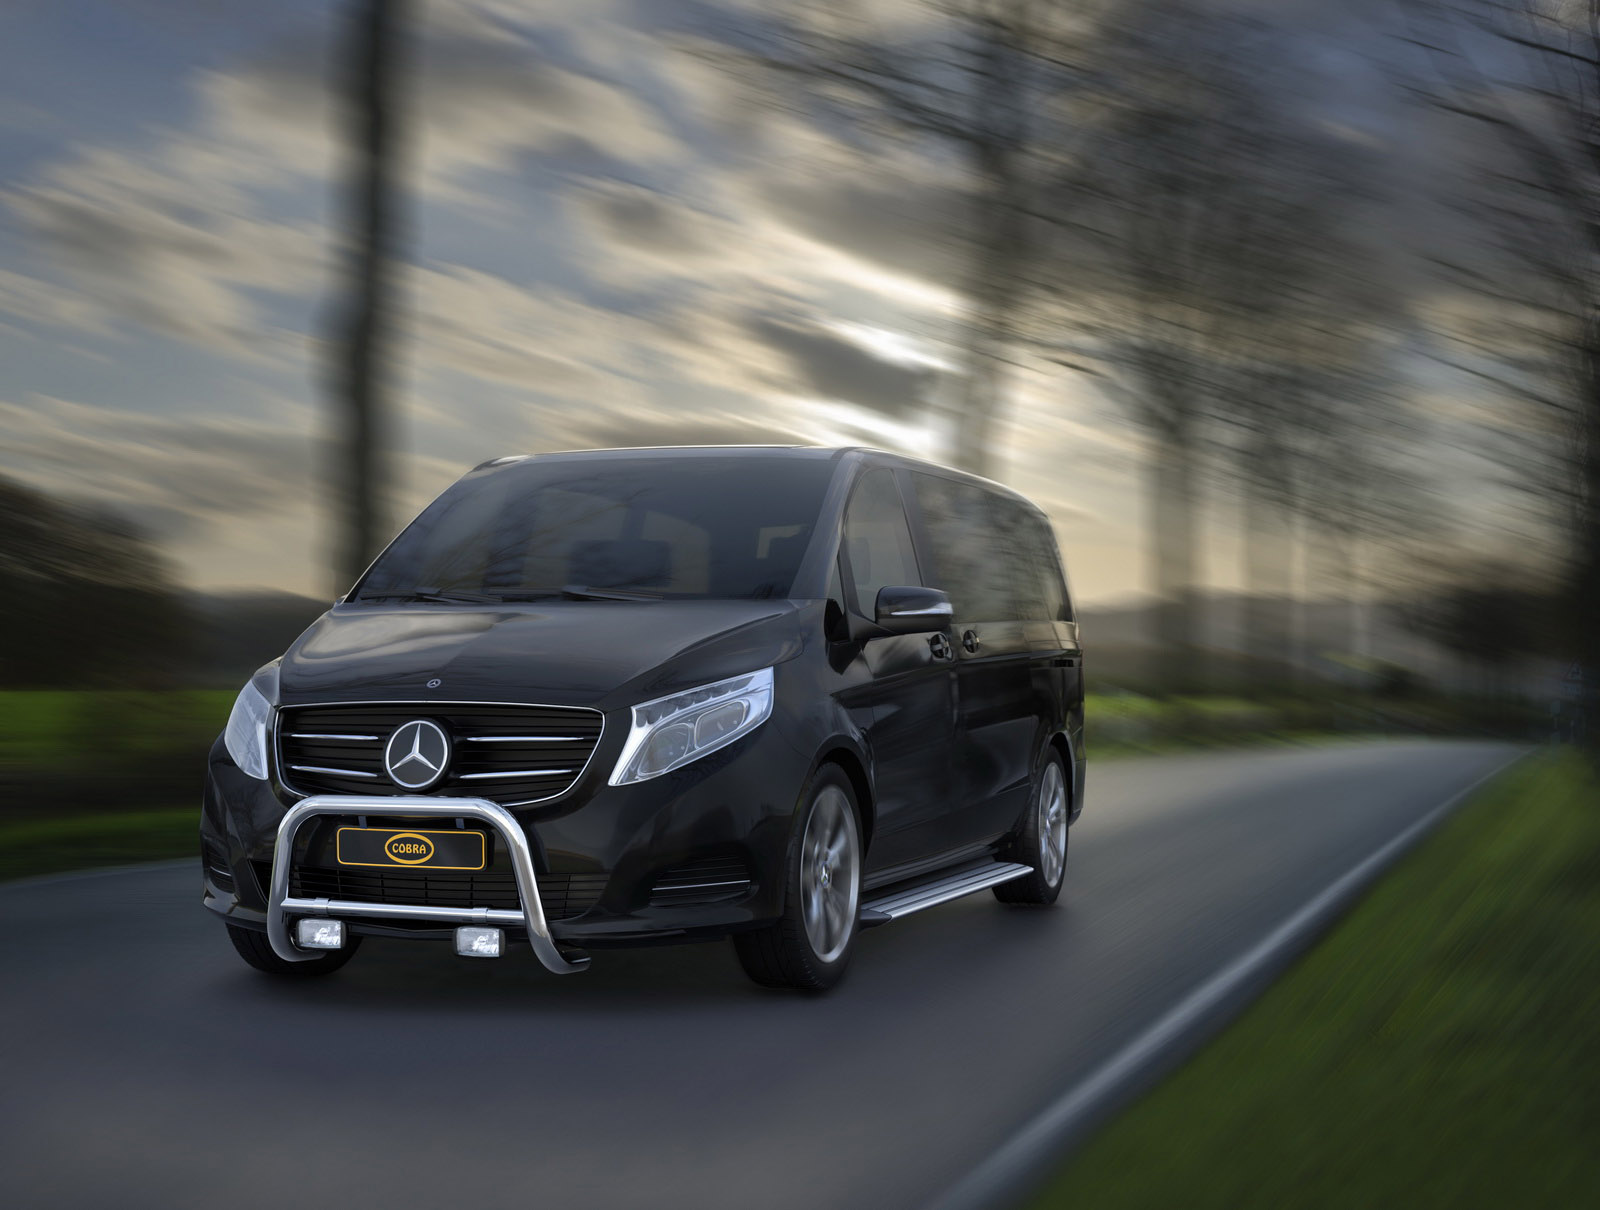 cobra accessories adorn the new mercedes v class and vito vans. Black Bedroom Furniture Sets. Home Design Ideas